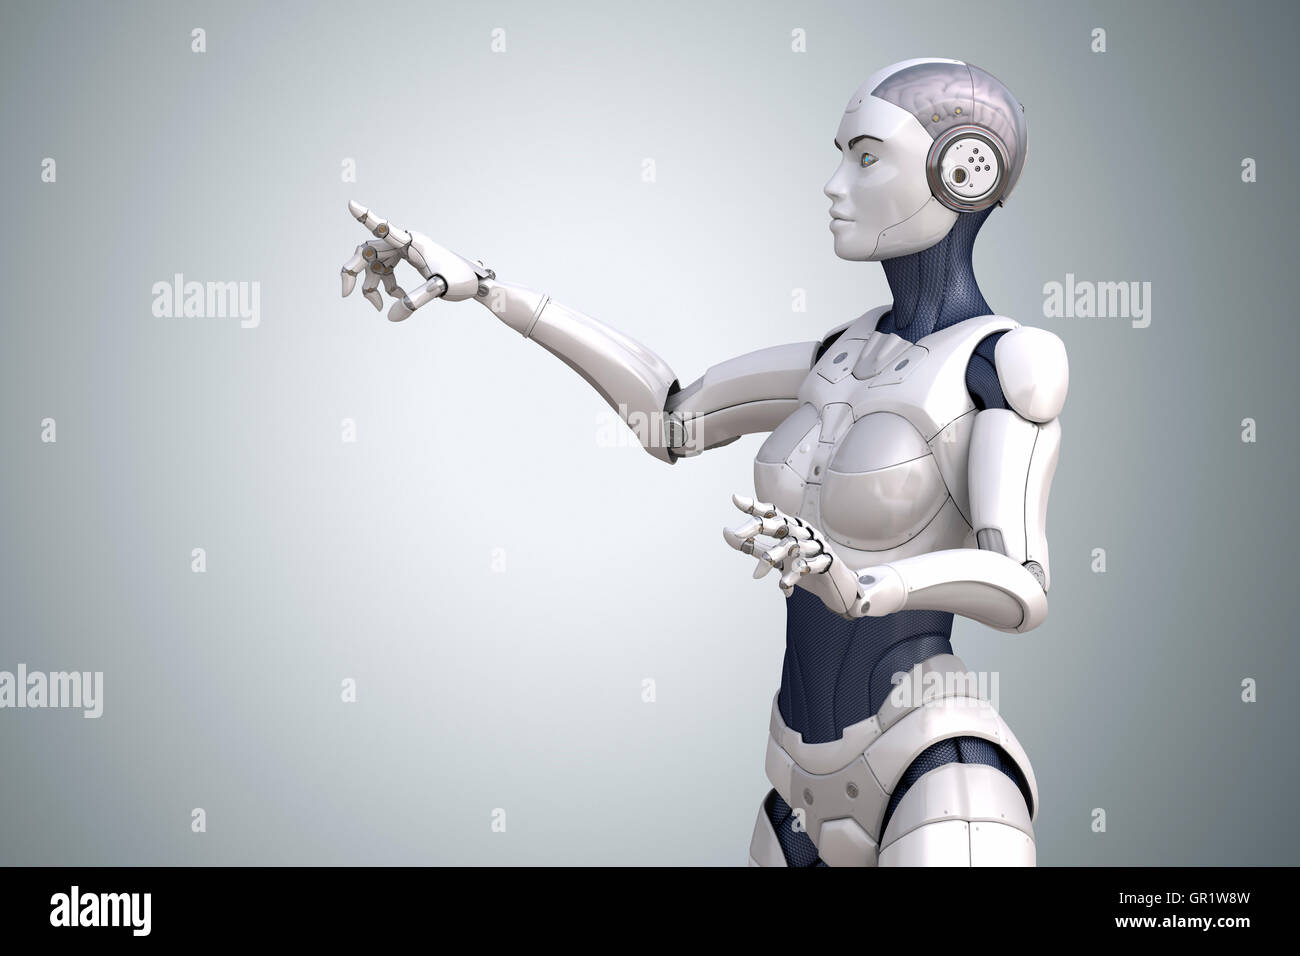 Robot points his finger up. Clipping path included - Stock Image